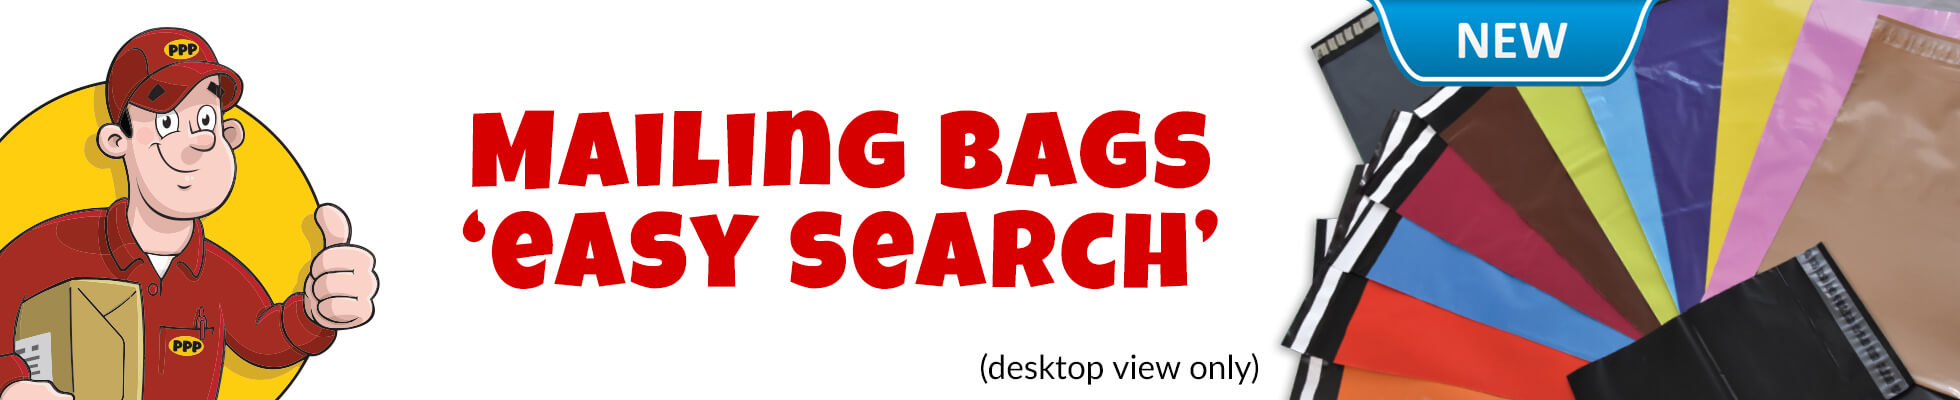 Mailing Bags - Easy Search